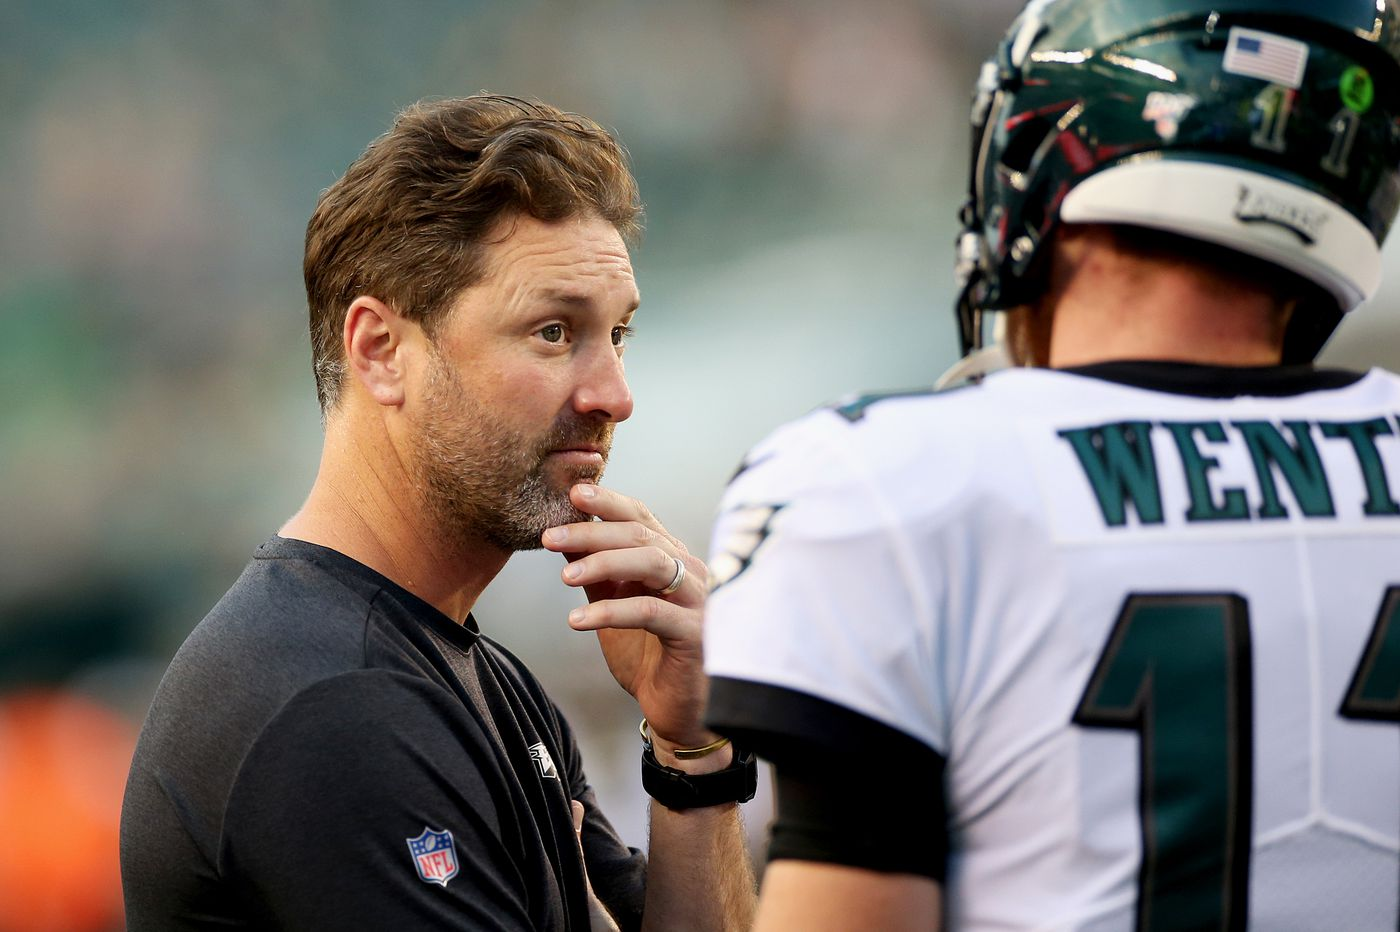 At least this time, Mike Groh and the Eagles have a chance to gameplan around the remaining receivers